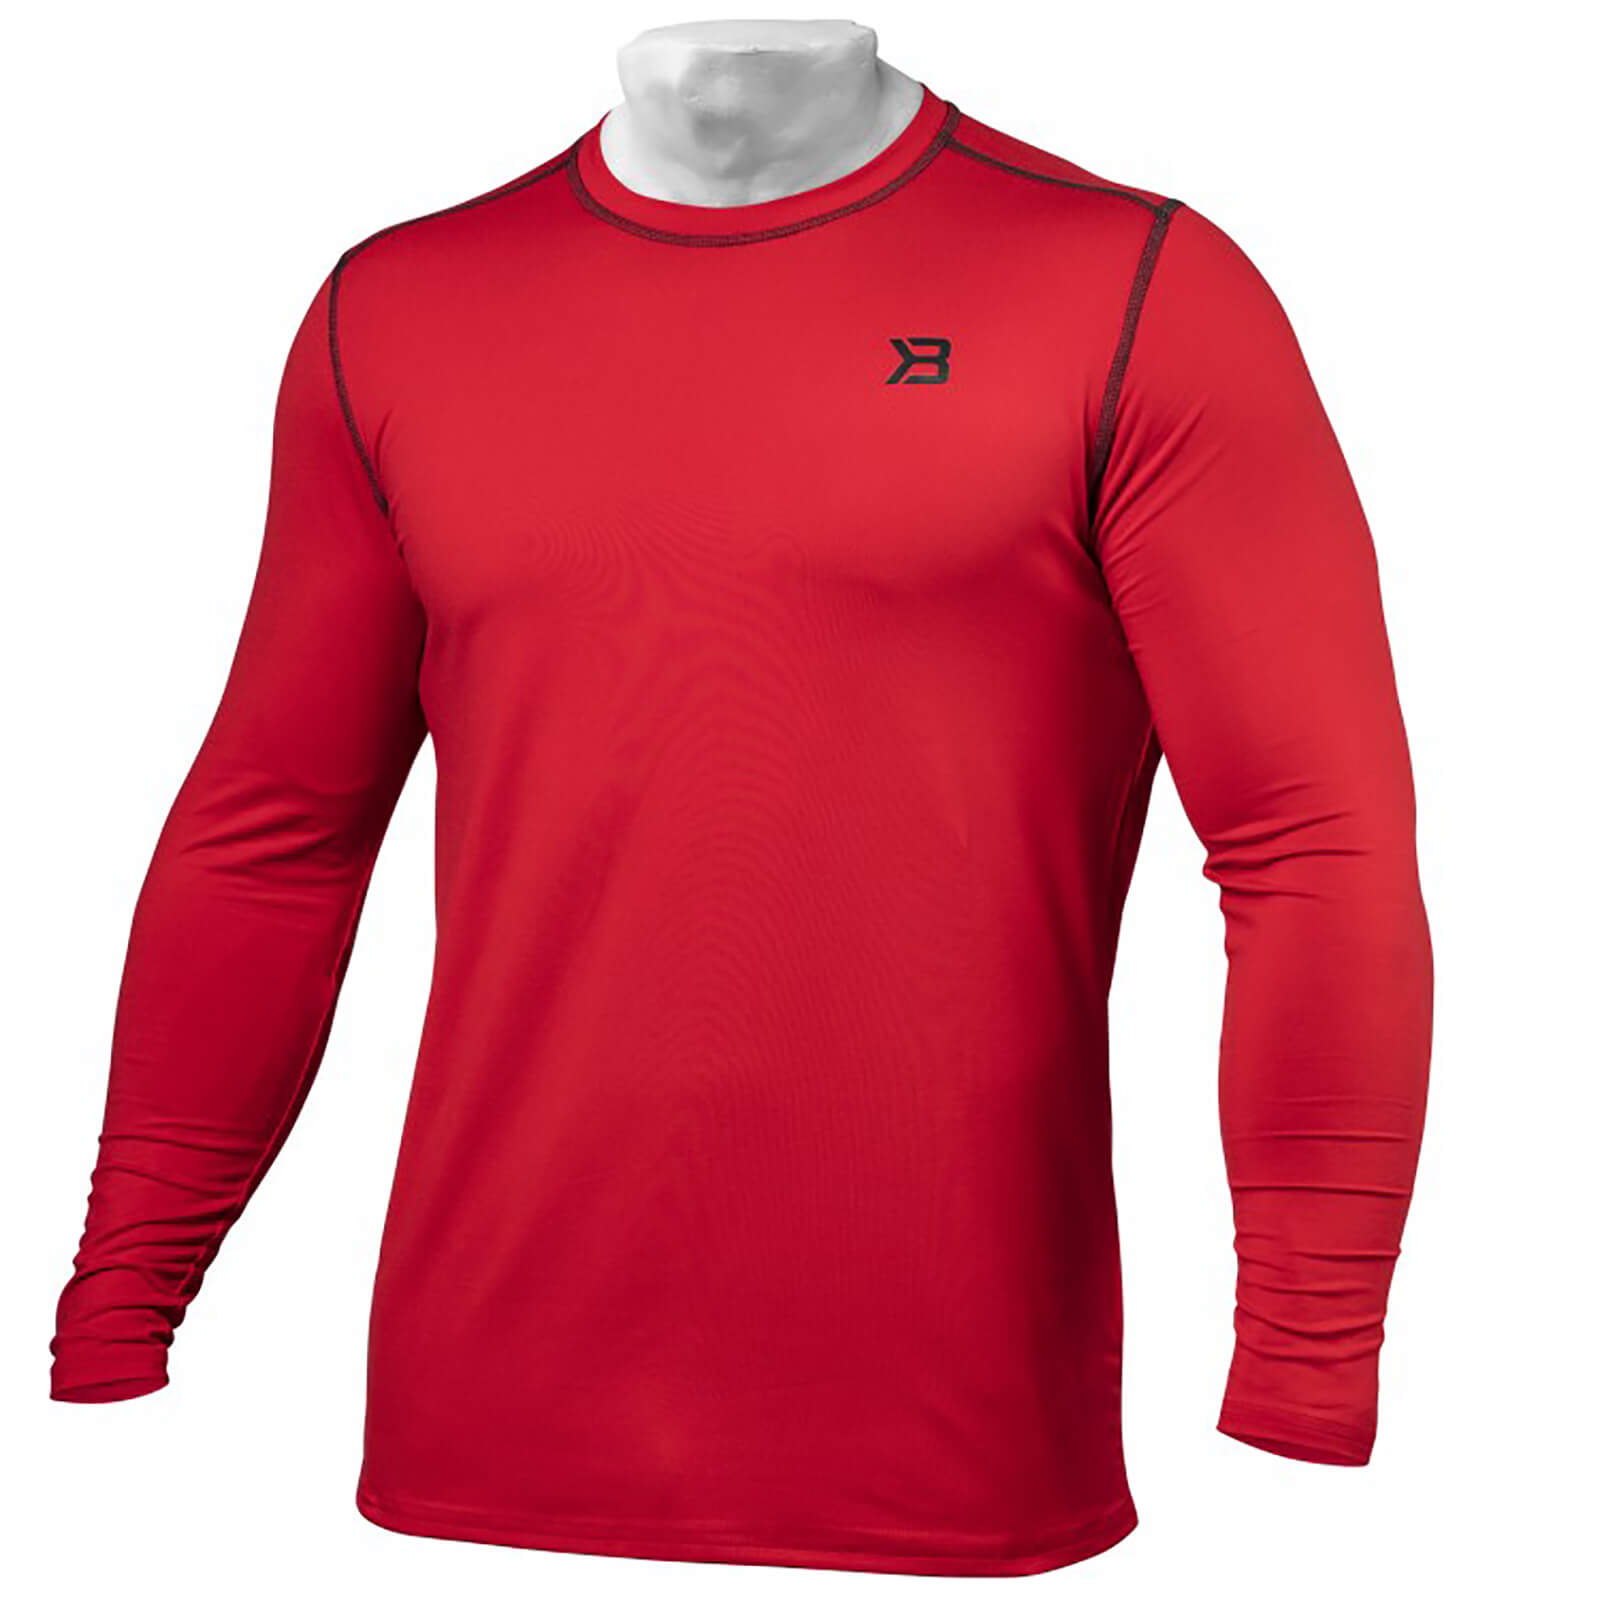 Better Bodies Performance Long Sleeve T-Shirt - Bright Red - S